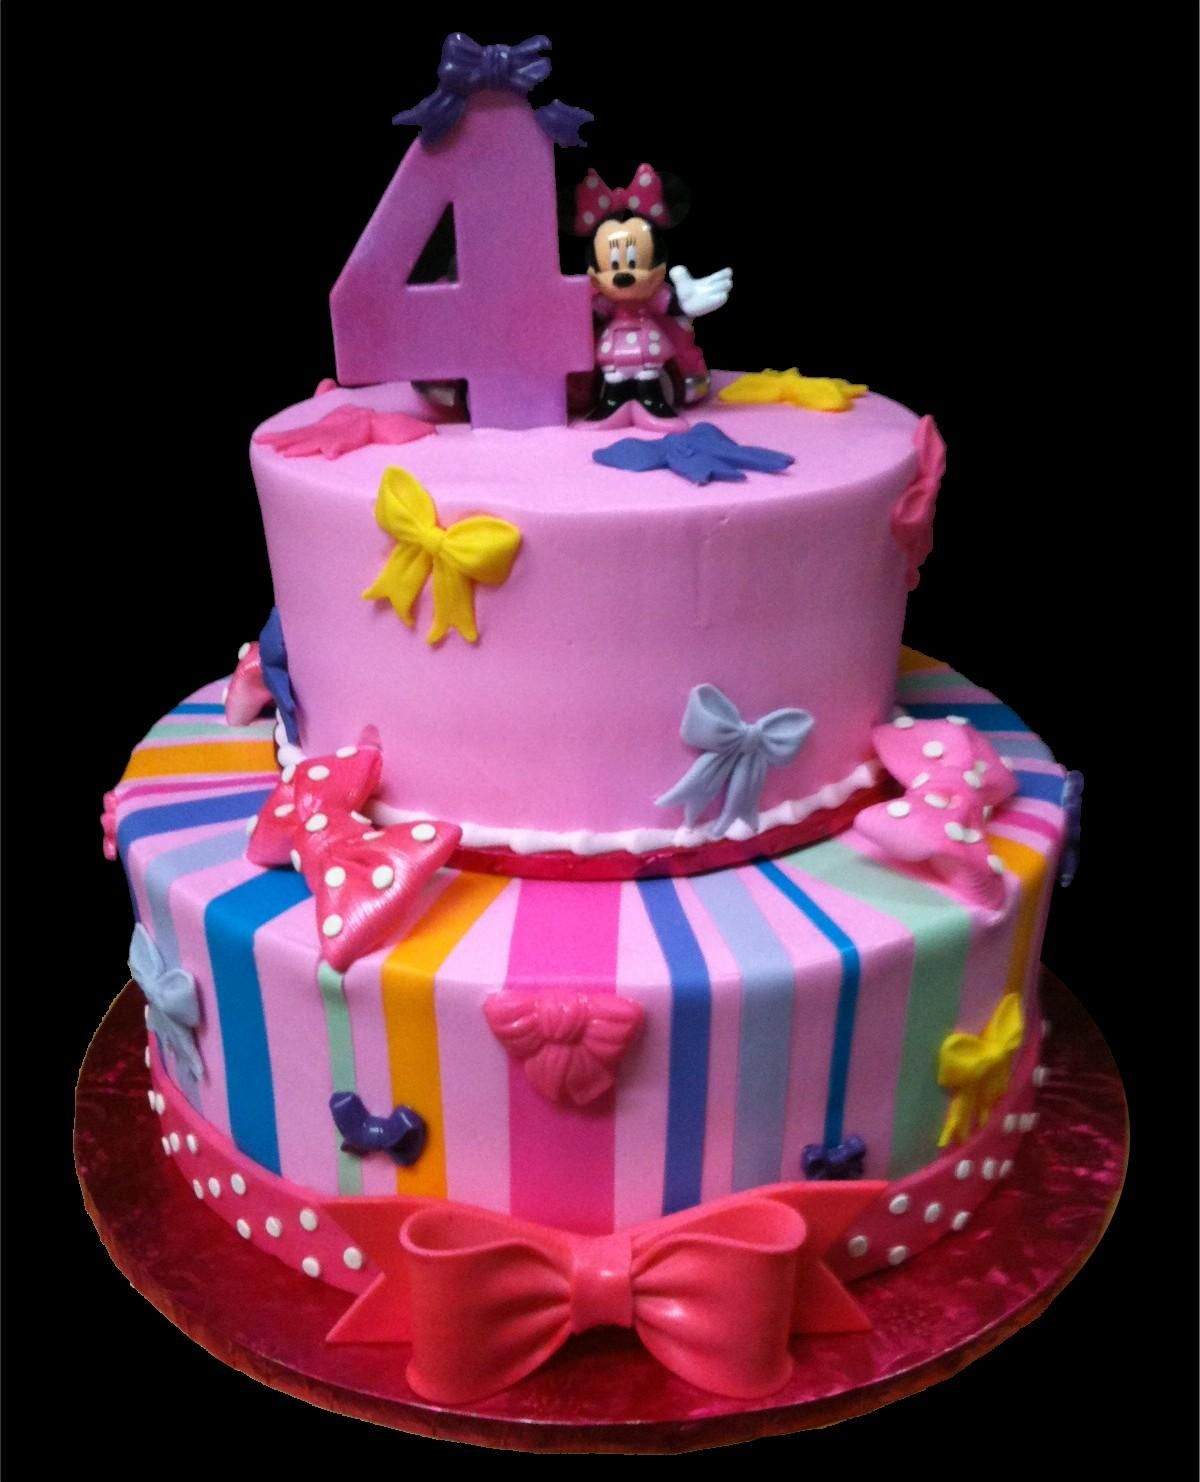 Minnie Mouse Bowtique Birthday Cake, Pink Buttercream Iced